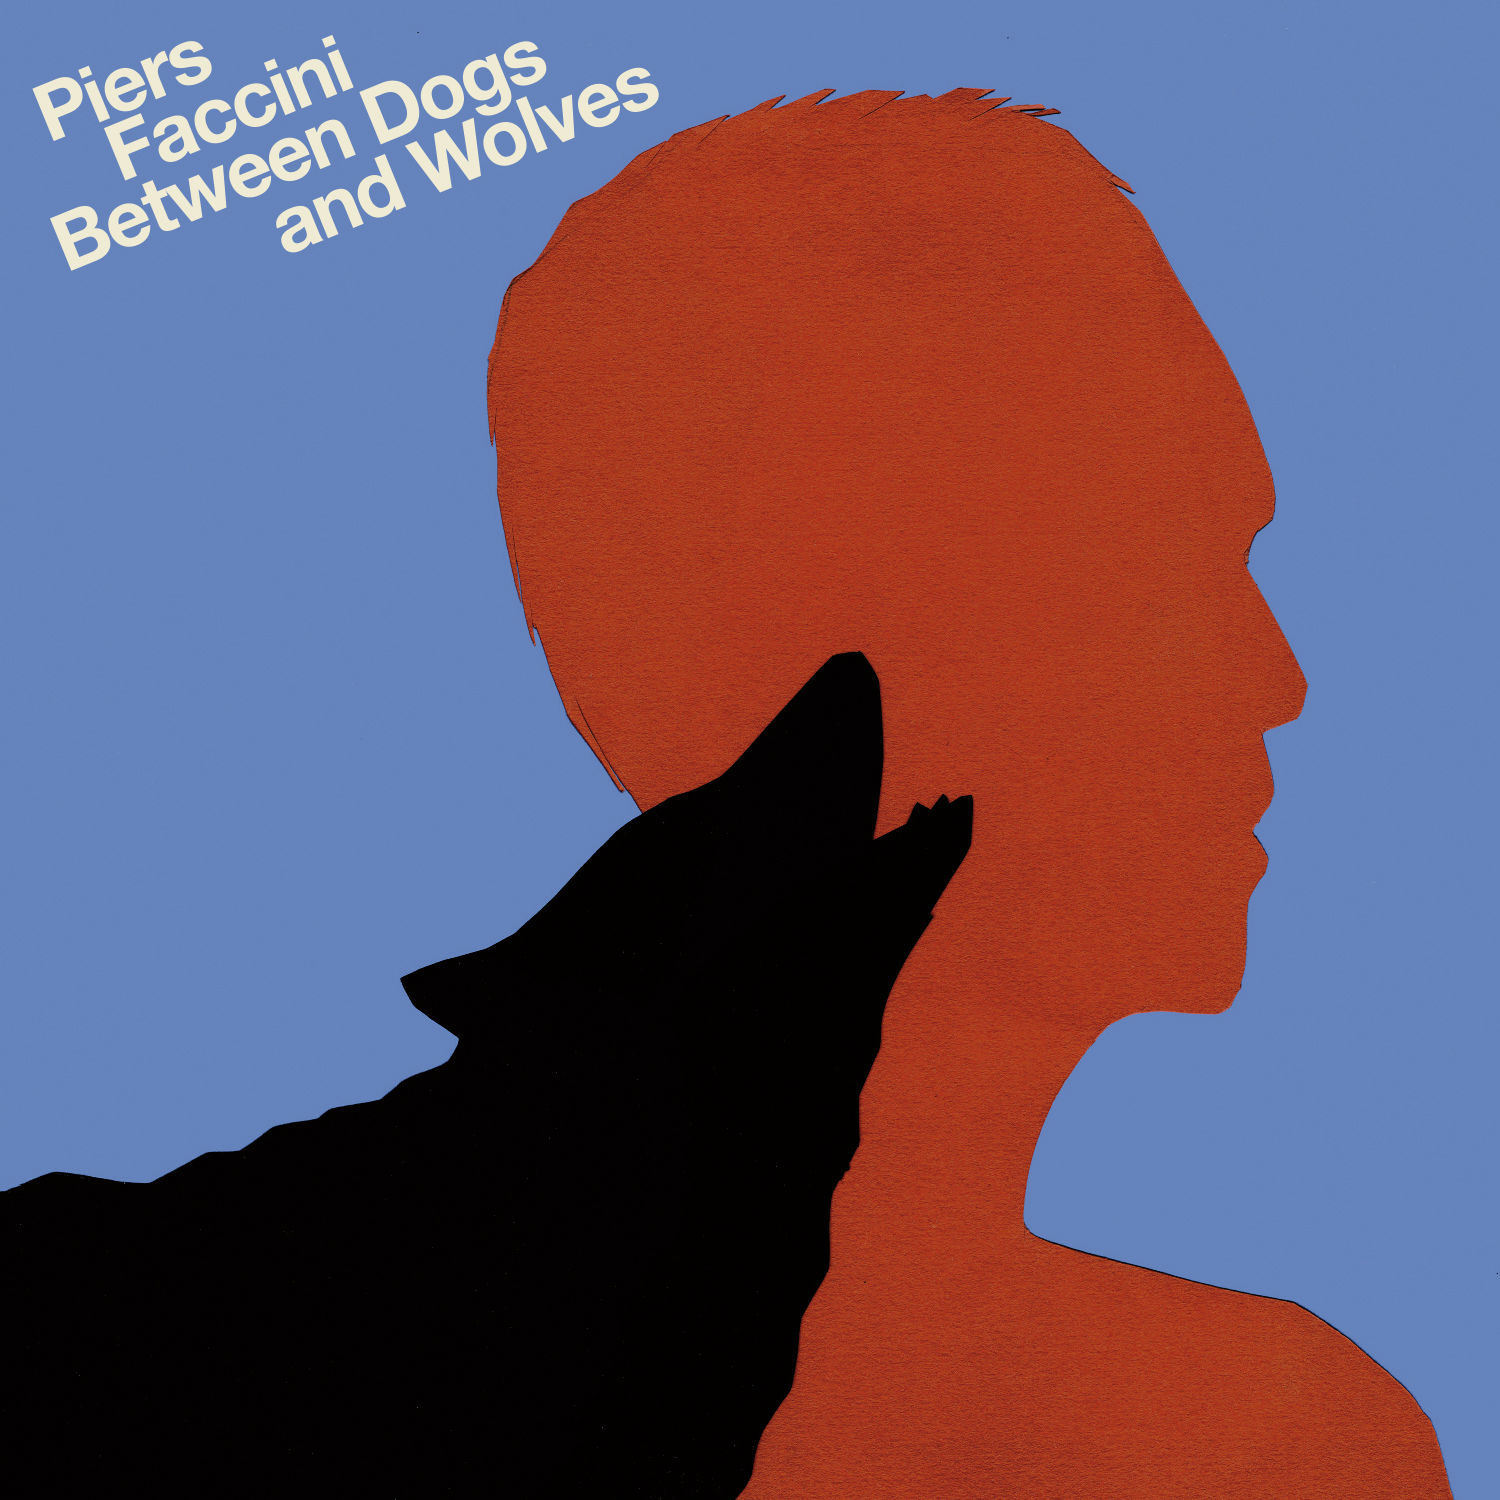 Piers Faccini – Between Dogs and Wolves